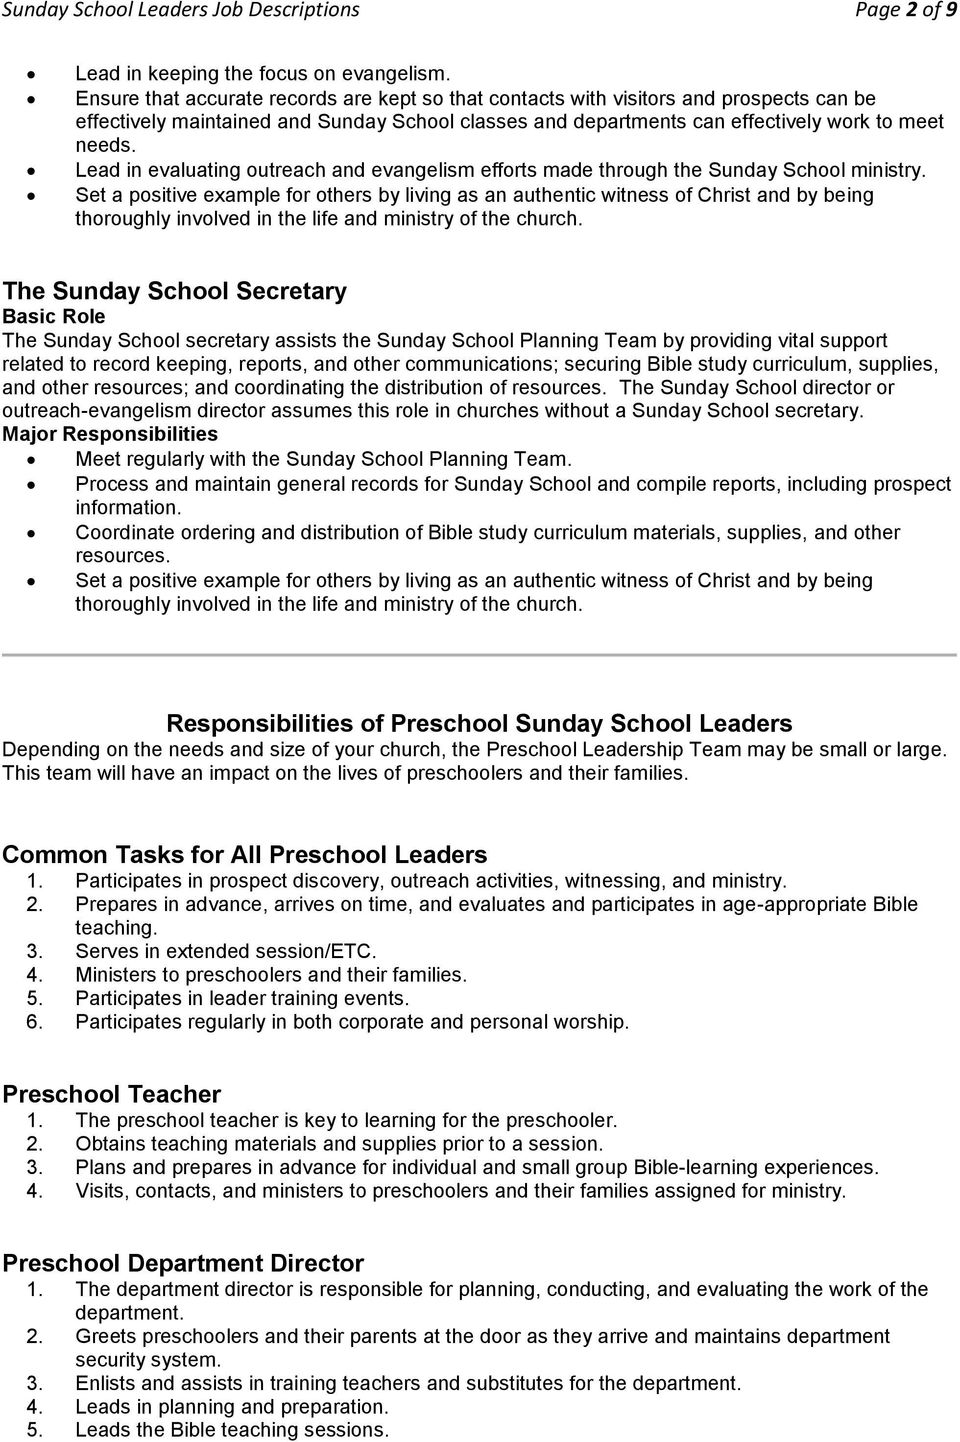 Sunday School Leaders Job Descriptions Pdf